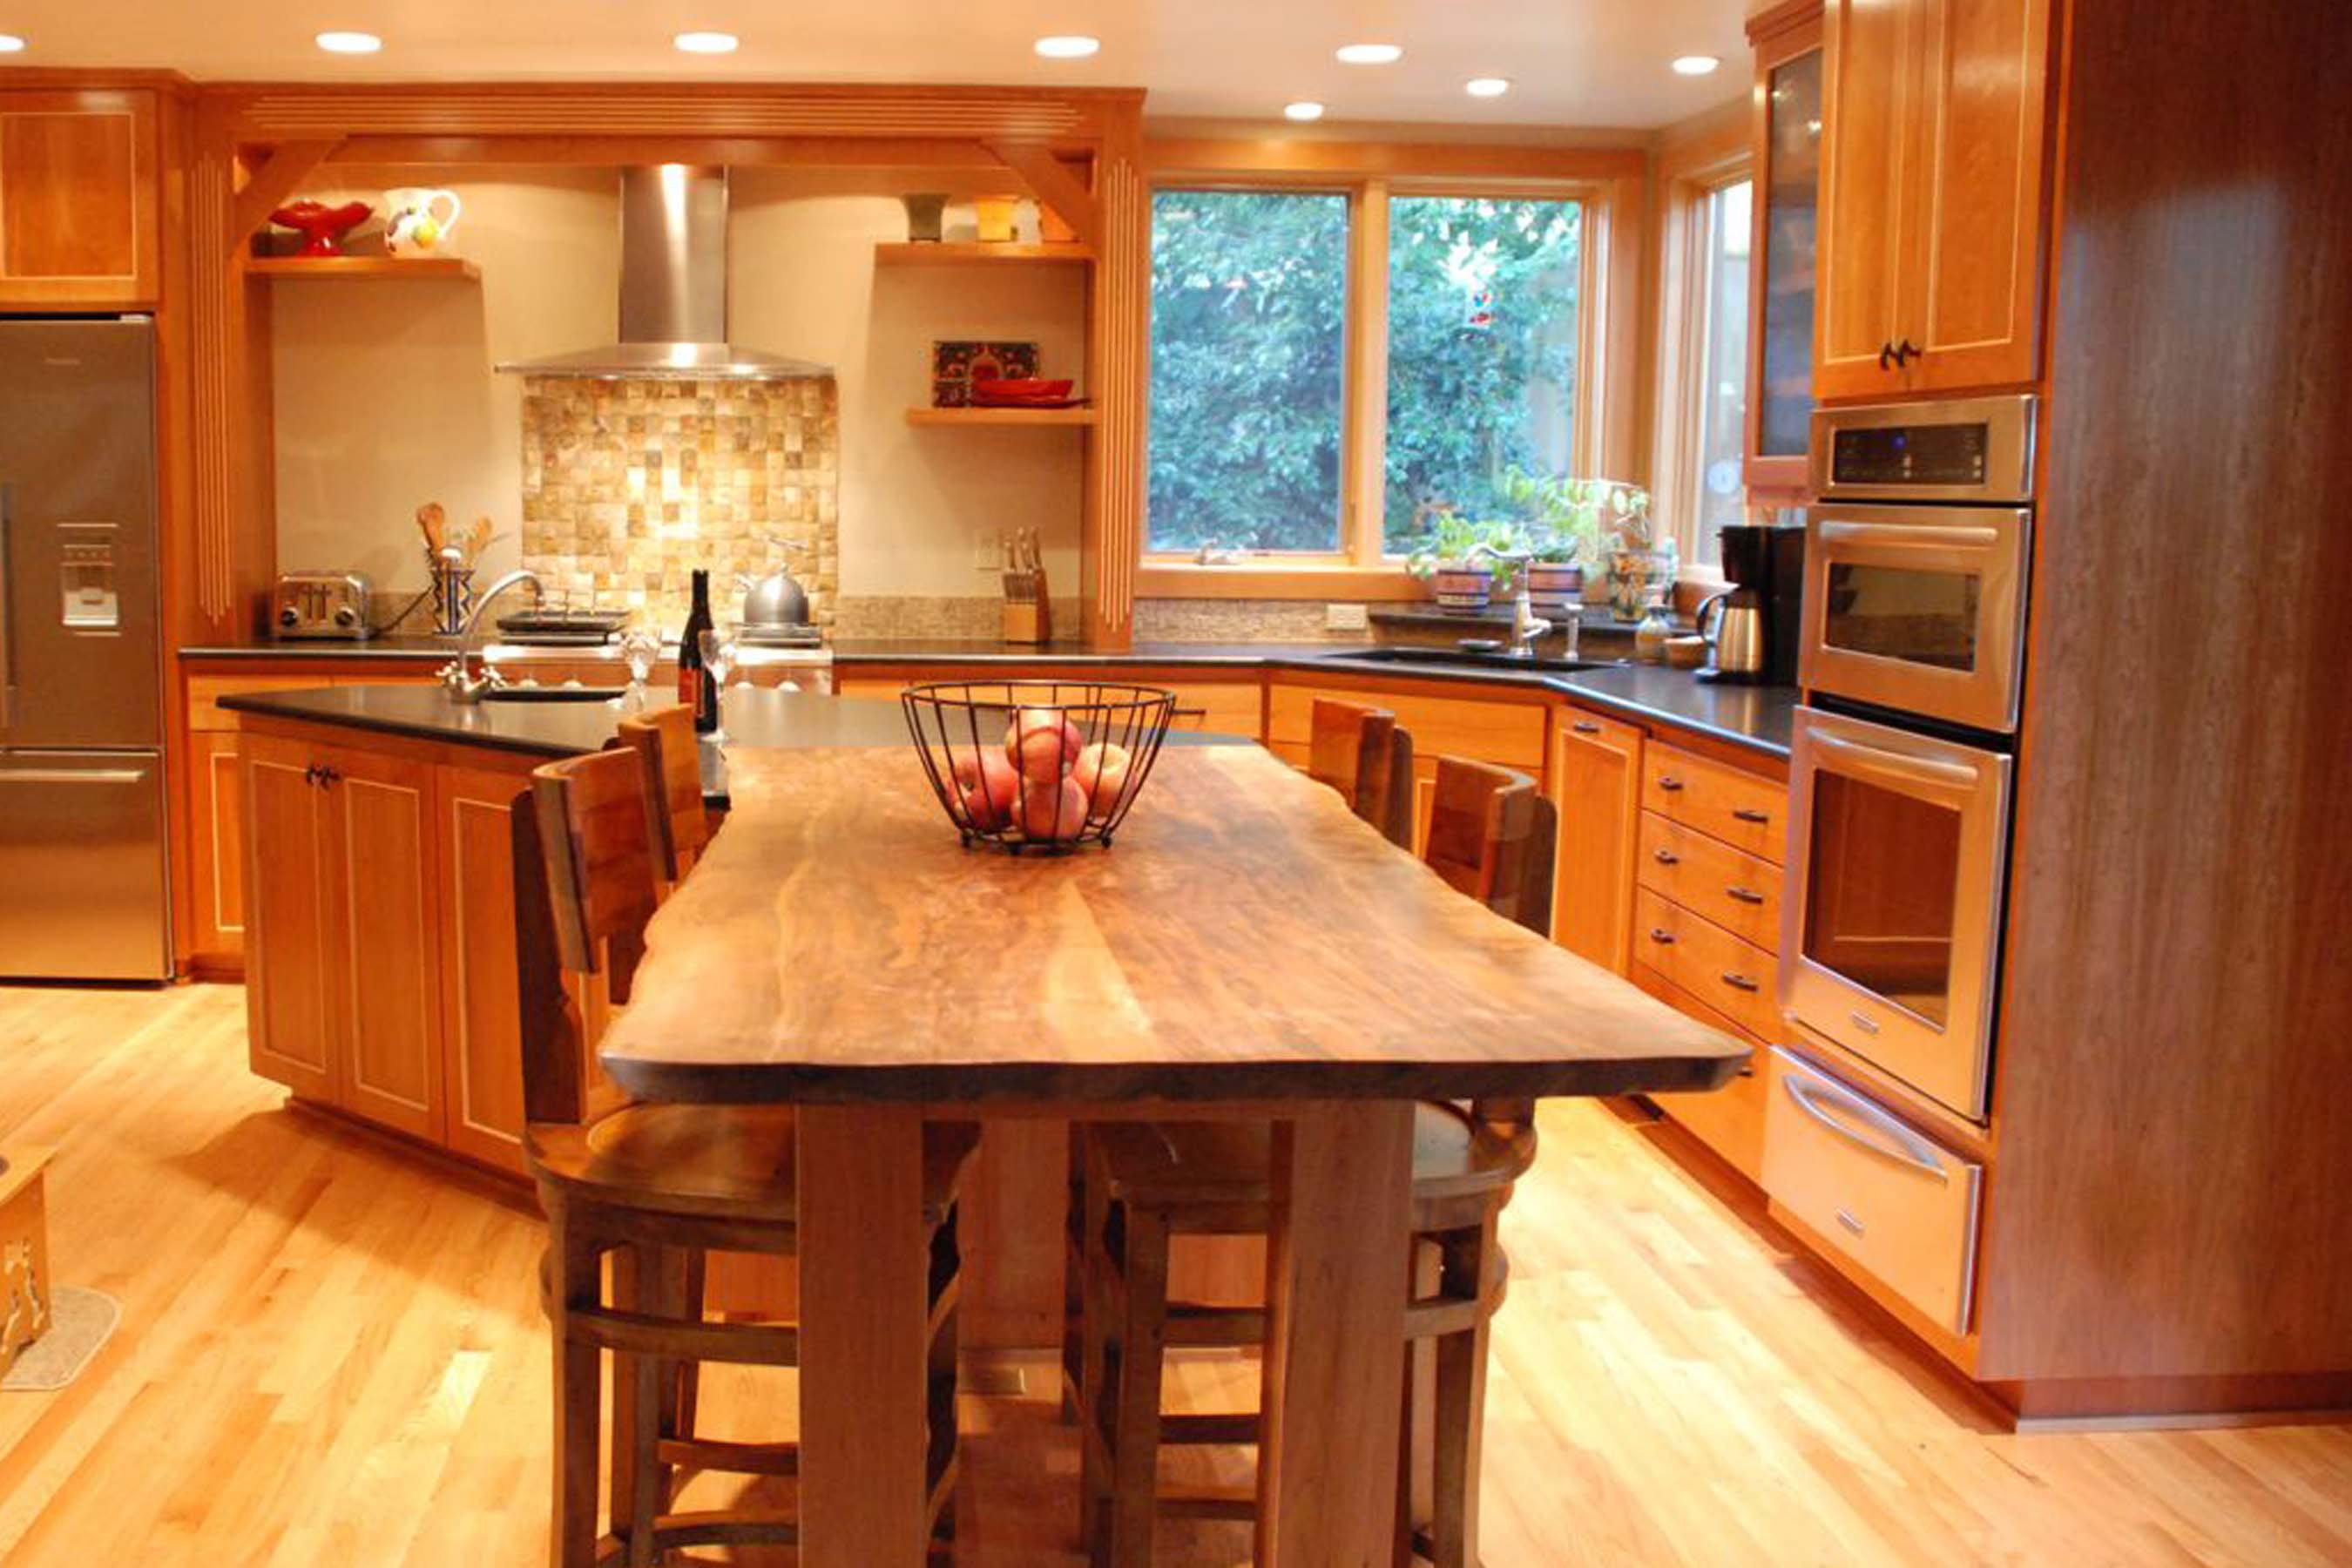 Open Kitchen Great Room Floor Plans furthermore 10 Advantages Of The Humble Ranch House as well Ranch House Transformation together with Rustic Wood Interiors Charming Distressed Wood Decor together with Marble Living Room Designs. on vaulted ceiling ranch house renovation